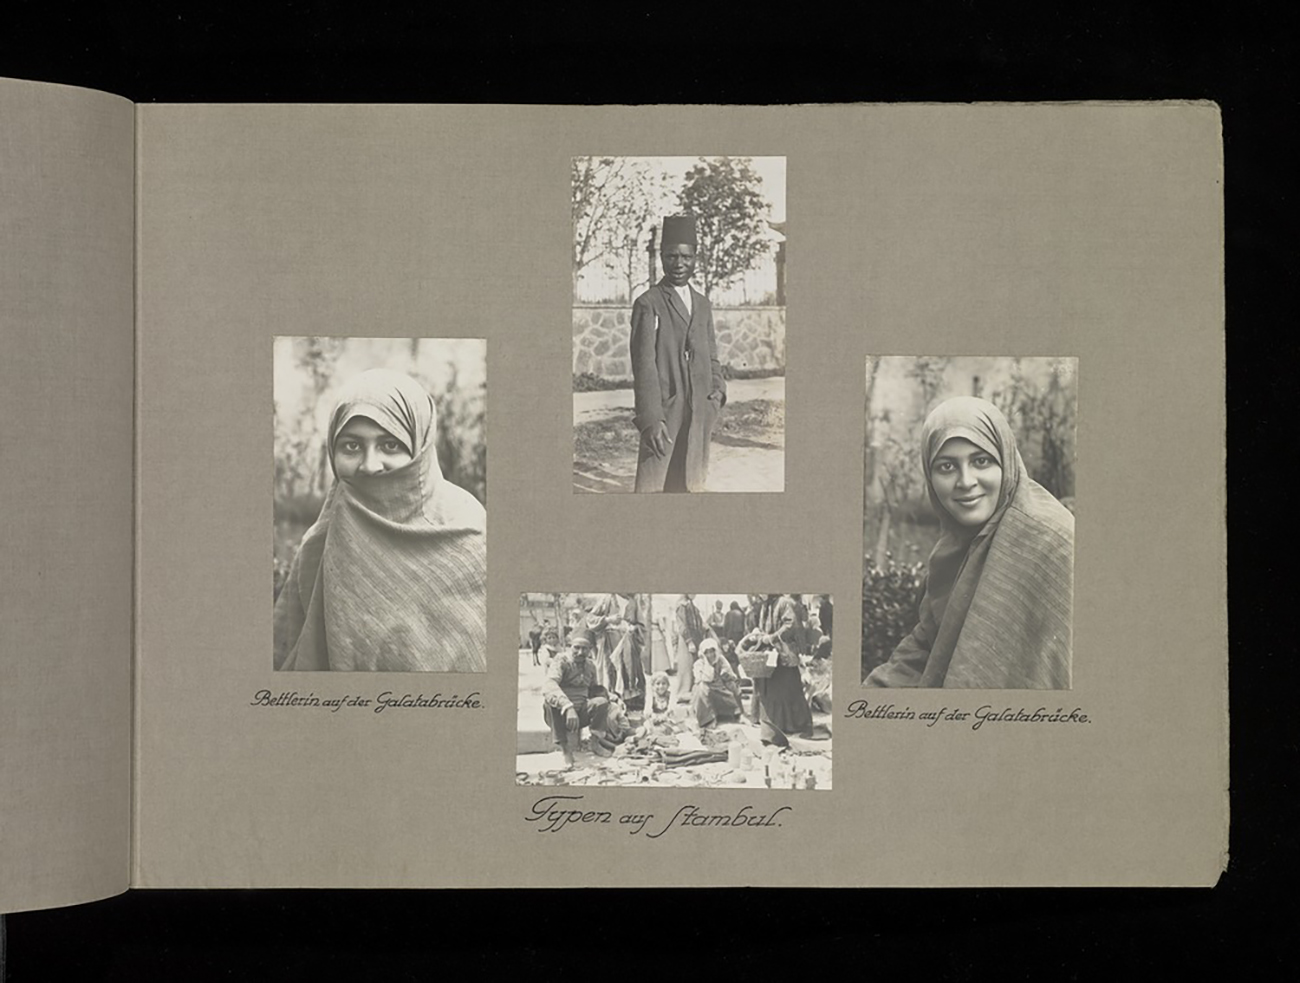 A page in an album featuring 4 images. 2 separate images are of a female with a headscarf.